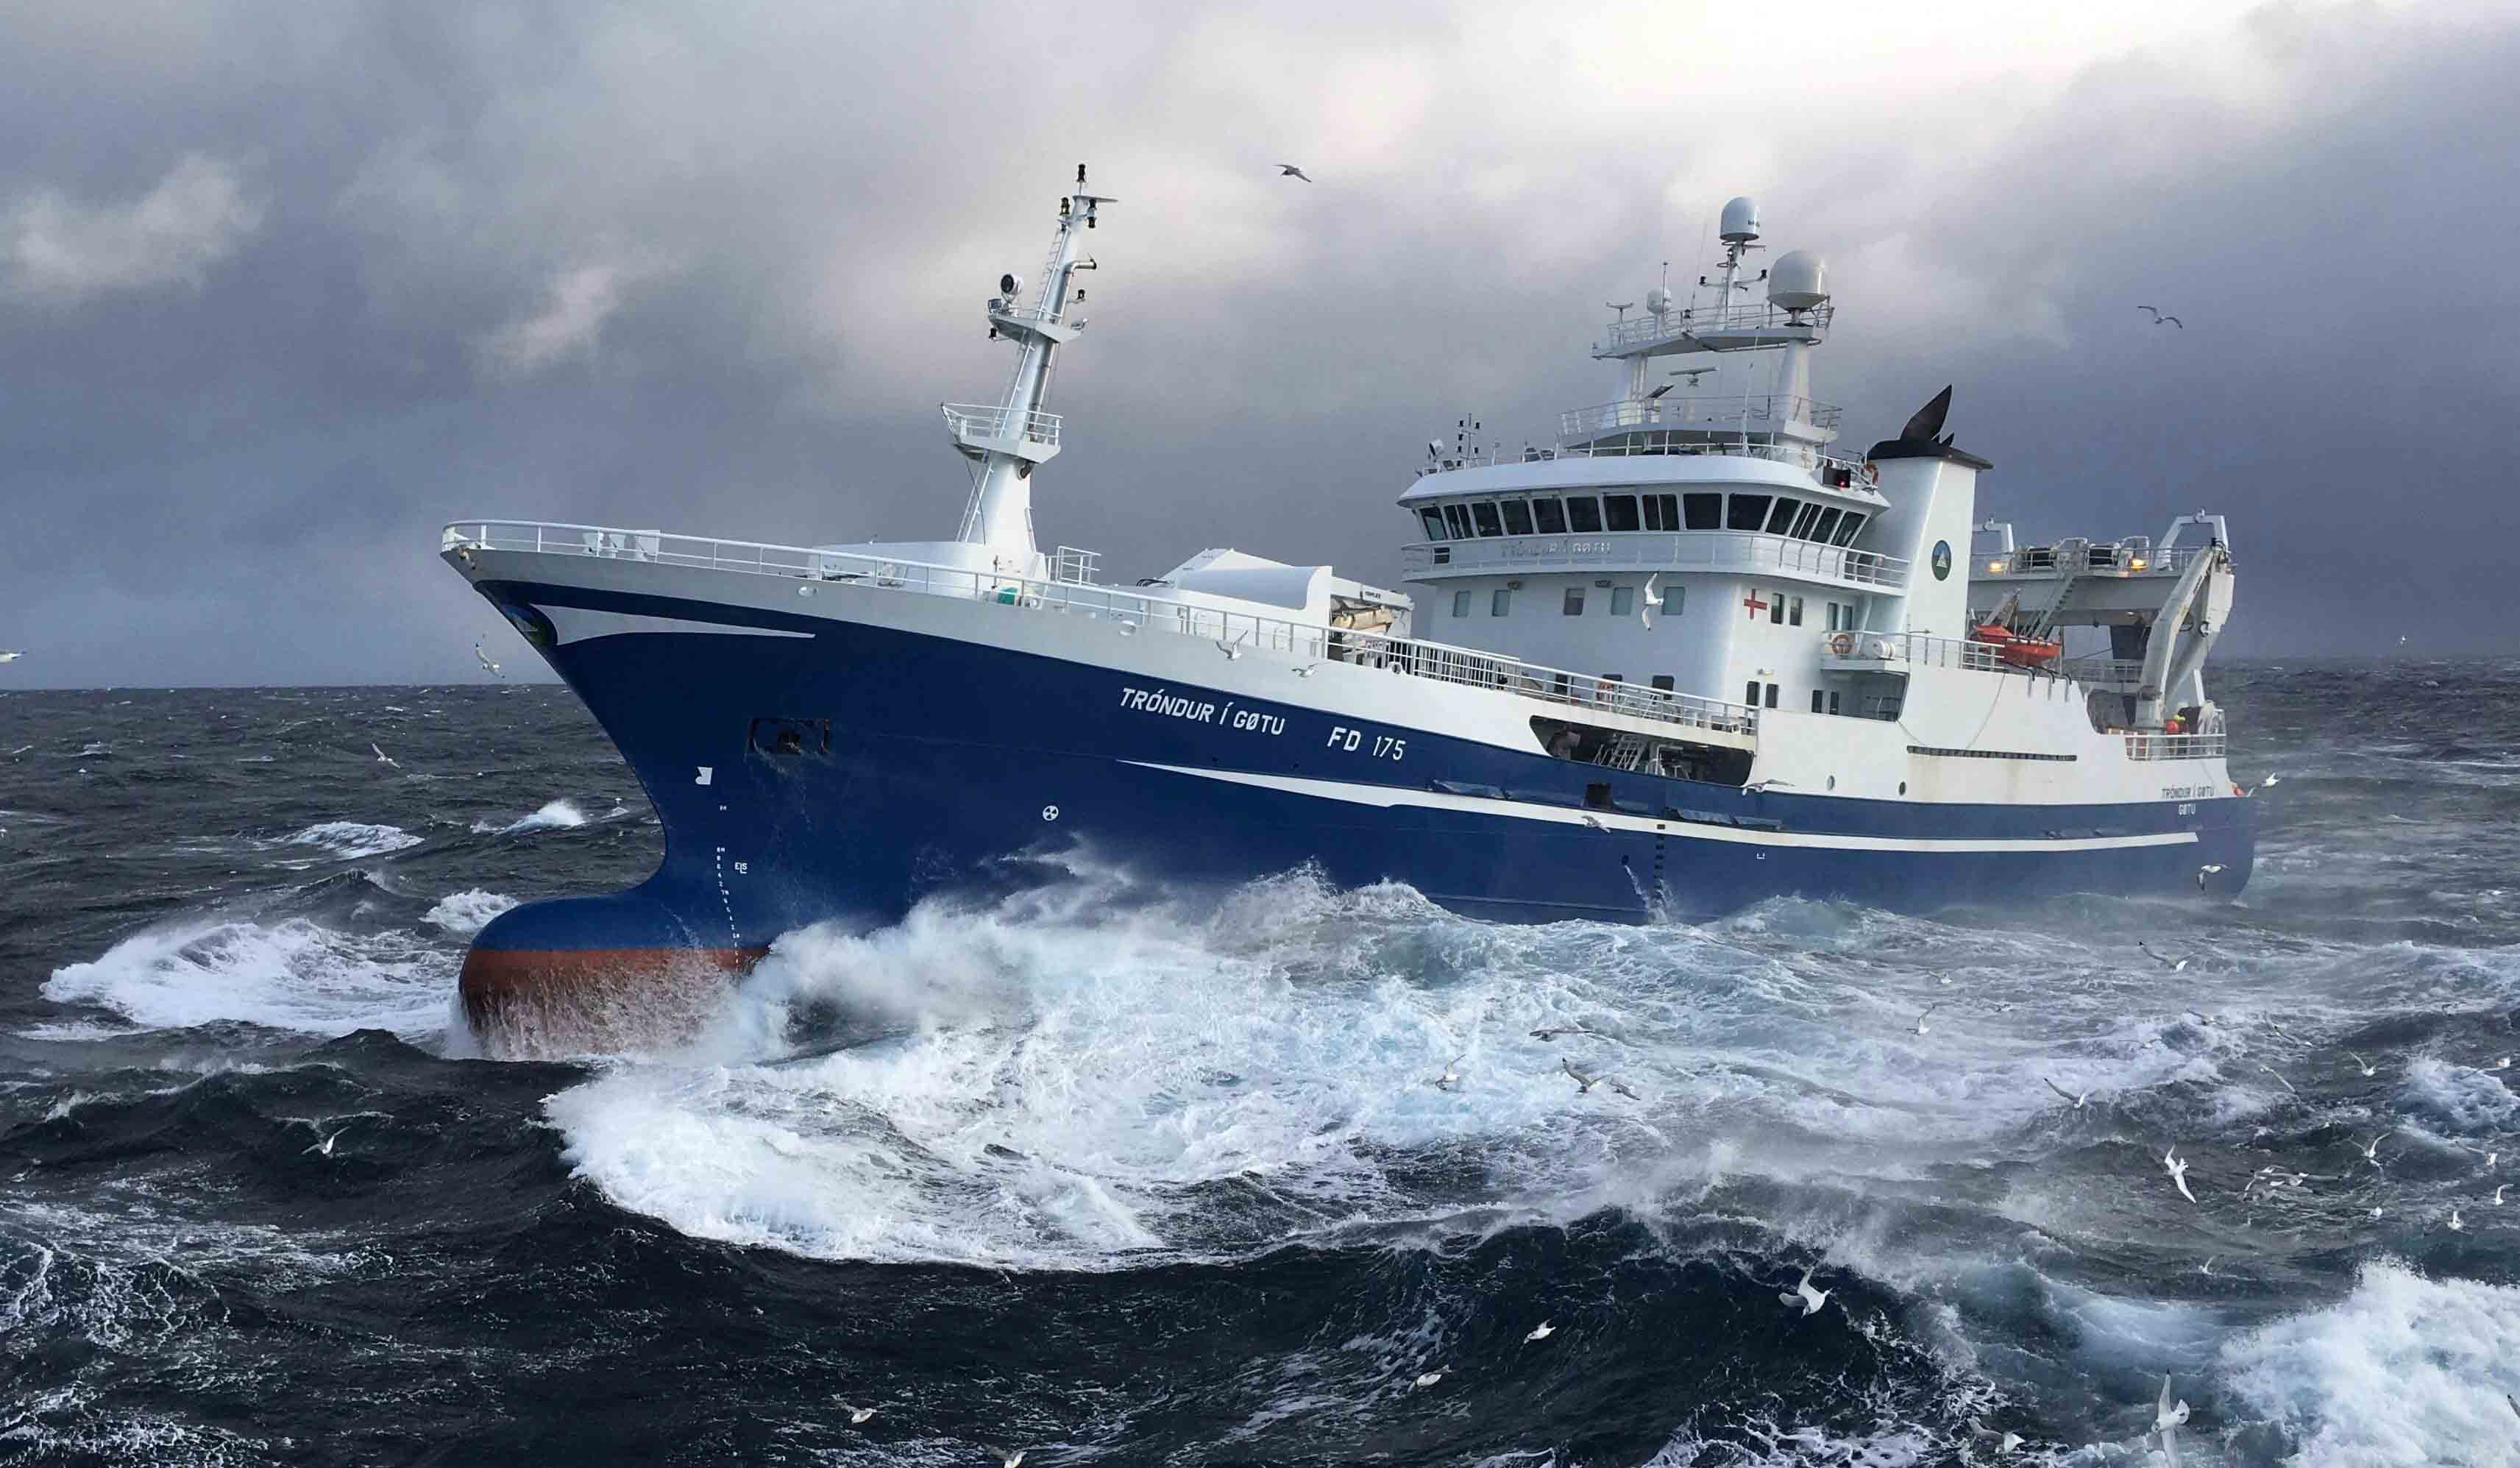 Faroese fishing ship